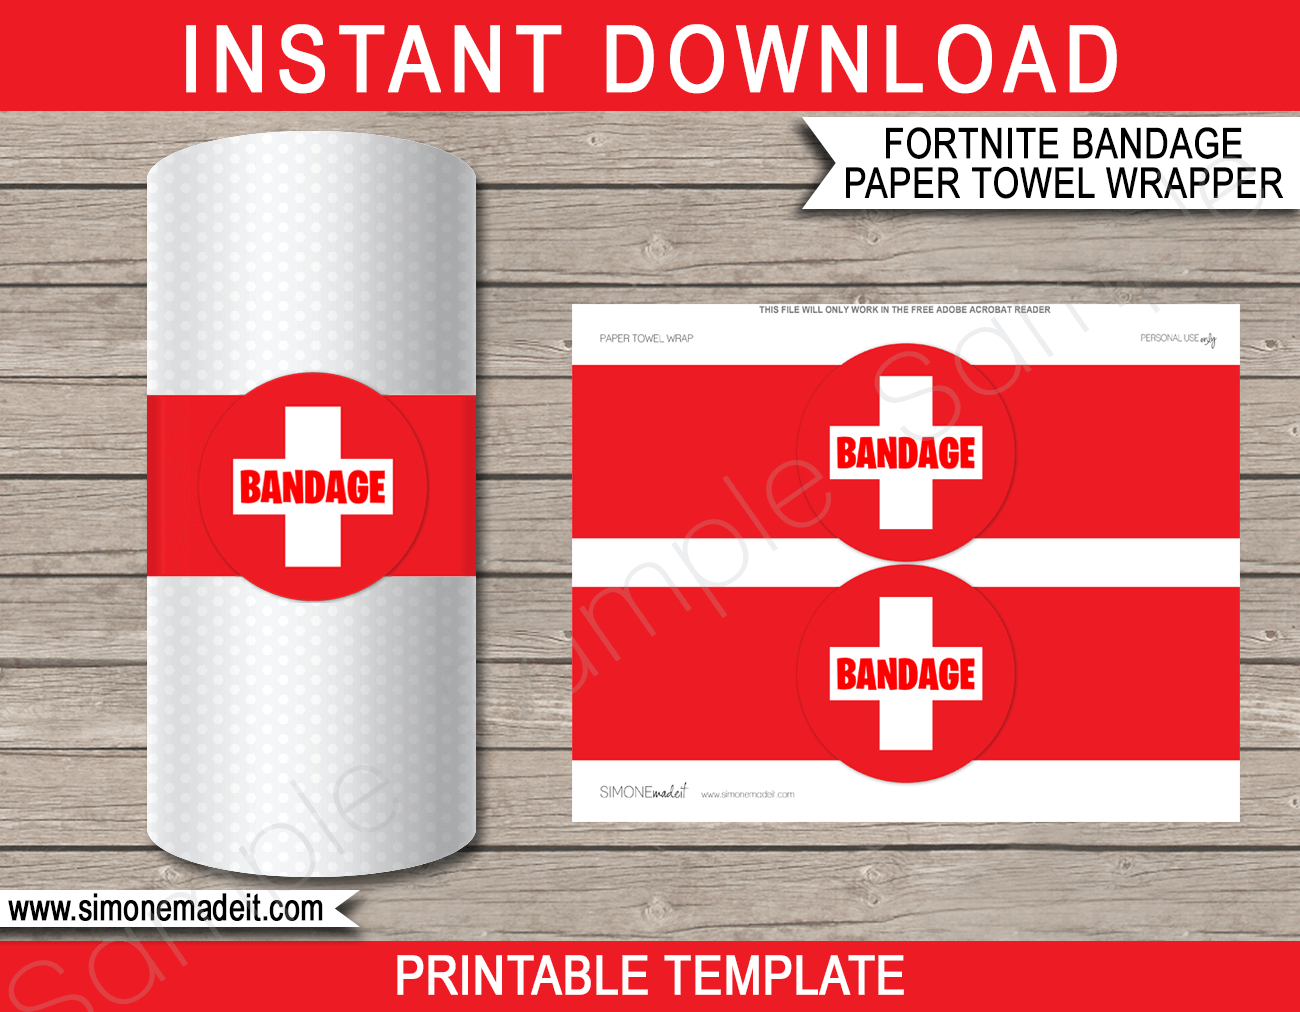 Fortnite Bandage Paper Towel Printable Template | DIY Bandage | Fortnite Theme Party Decorations | Instant Download via simonemadeit.com